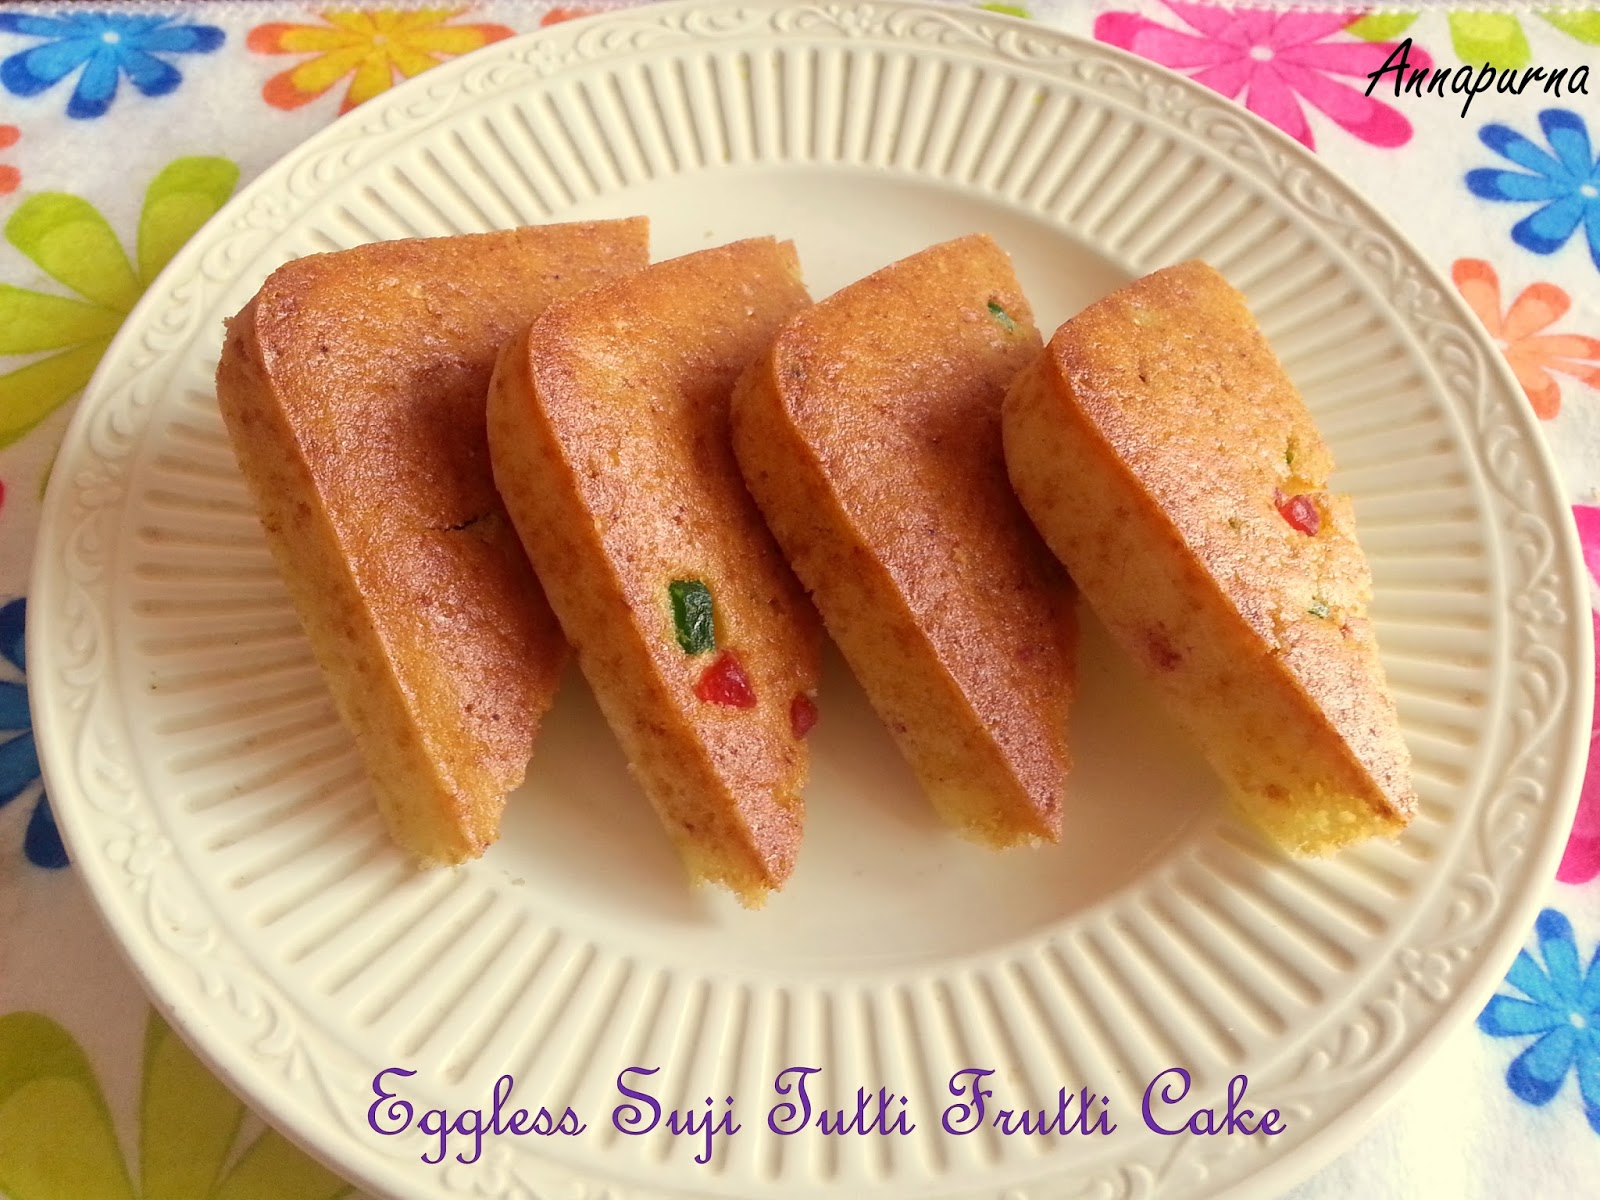 Indian food recipes indian recipes desi food desi recipes suji cake is a delicious and healthy indian cake and is very easy to make at home an eggless butter less cake with loads of tutti frutti making it all forumfinder Image collections